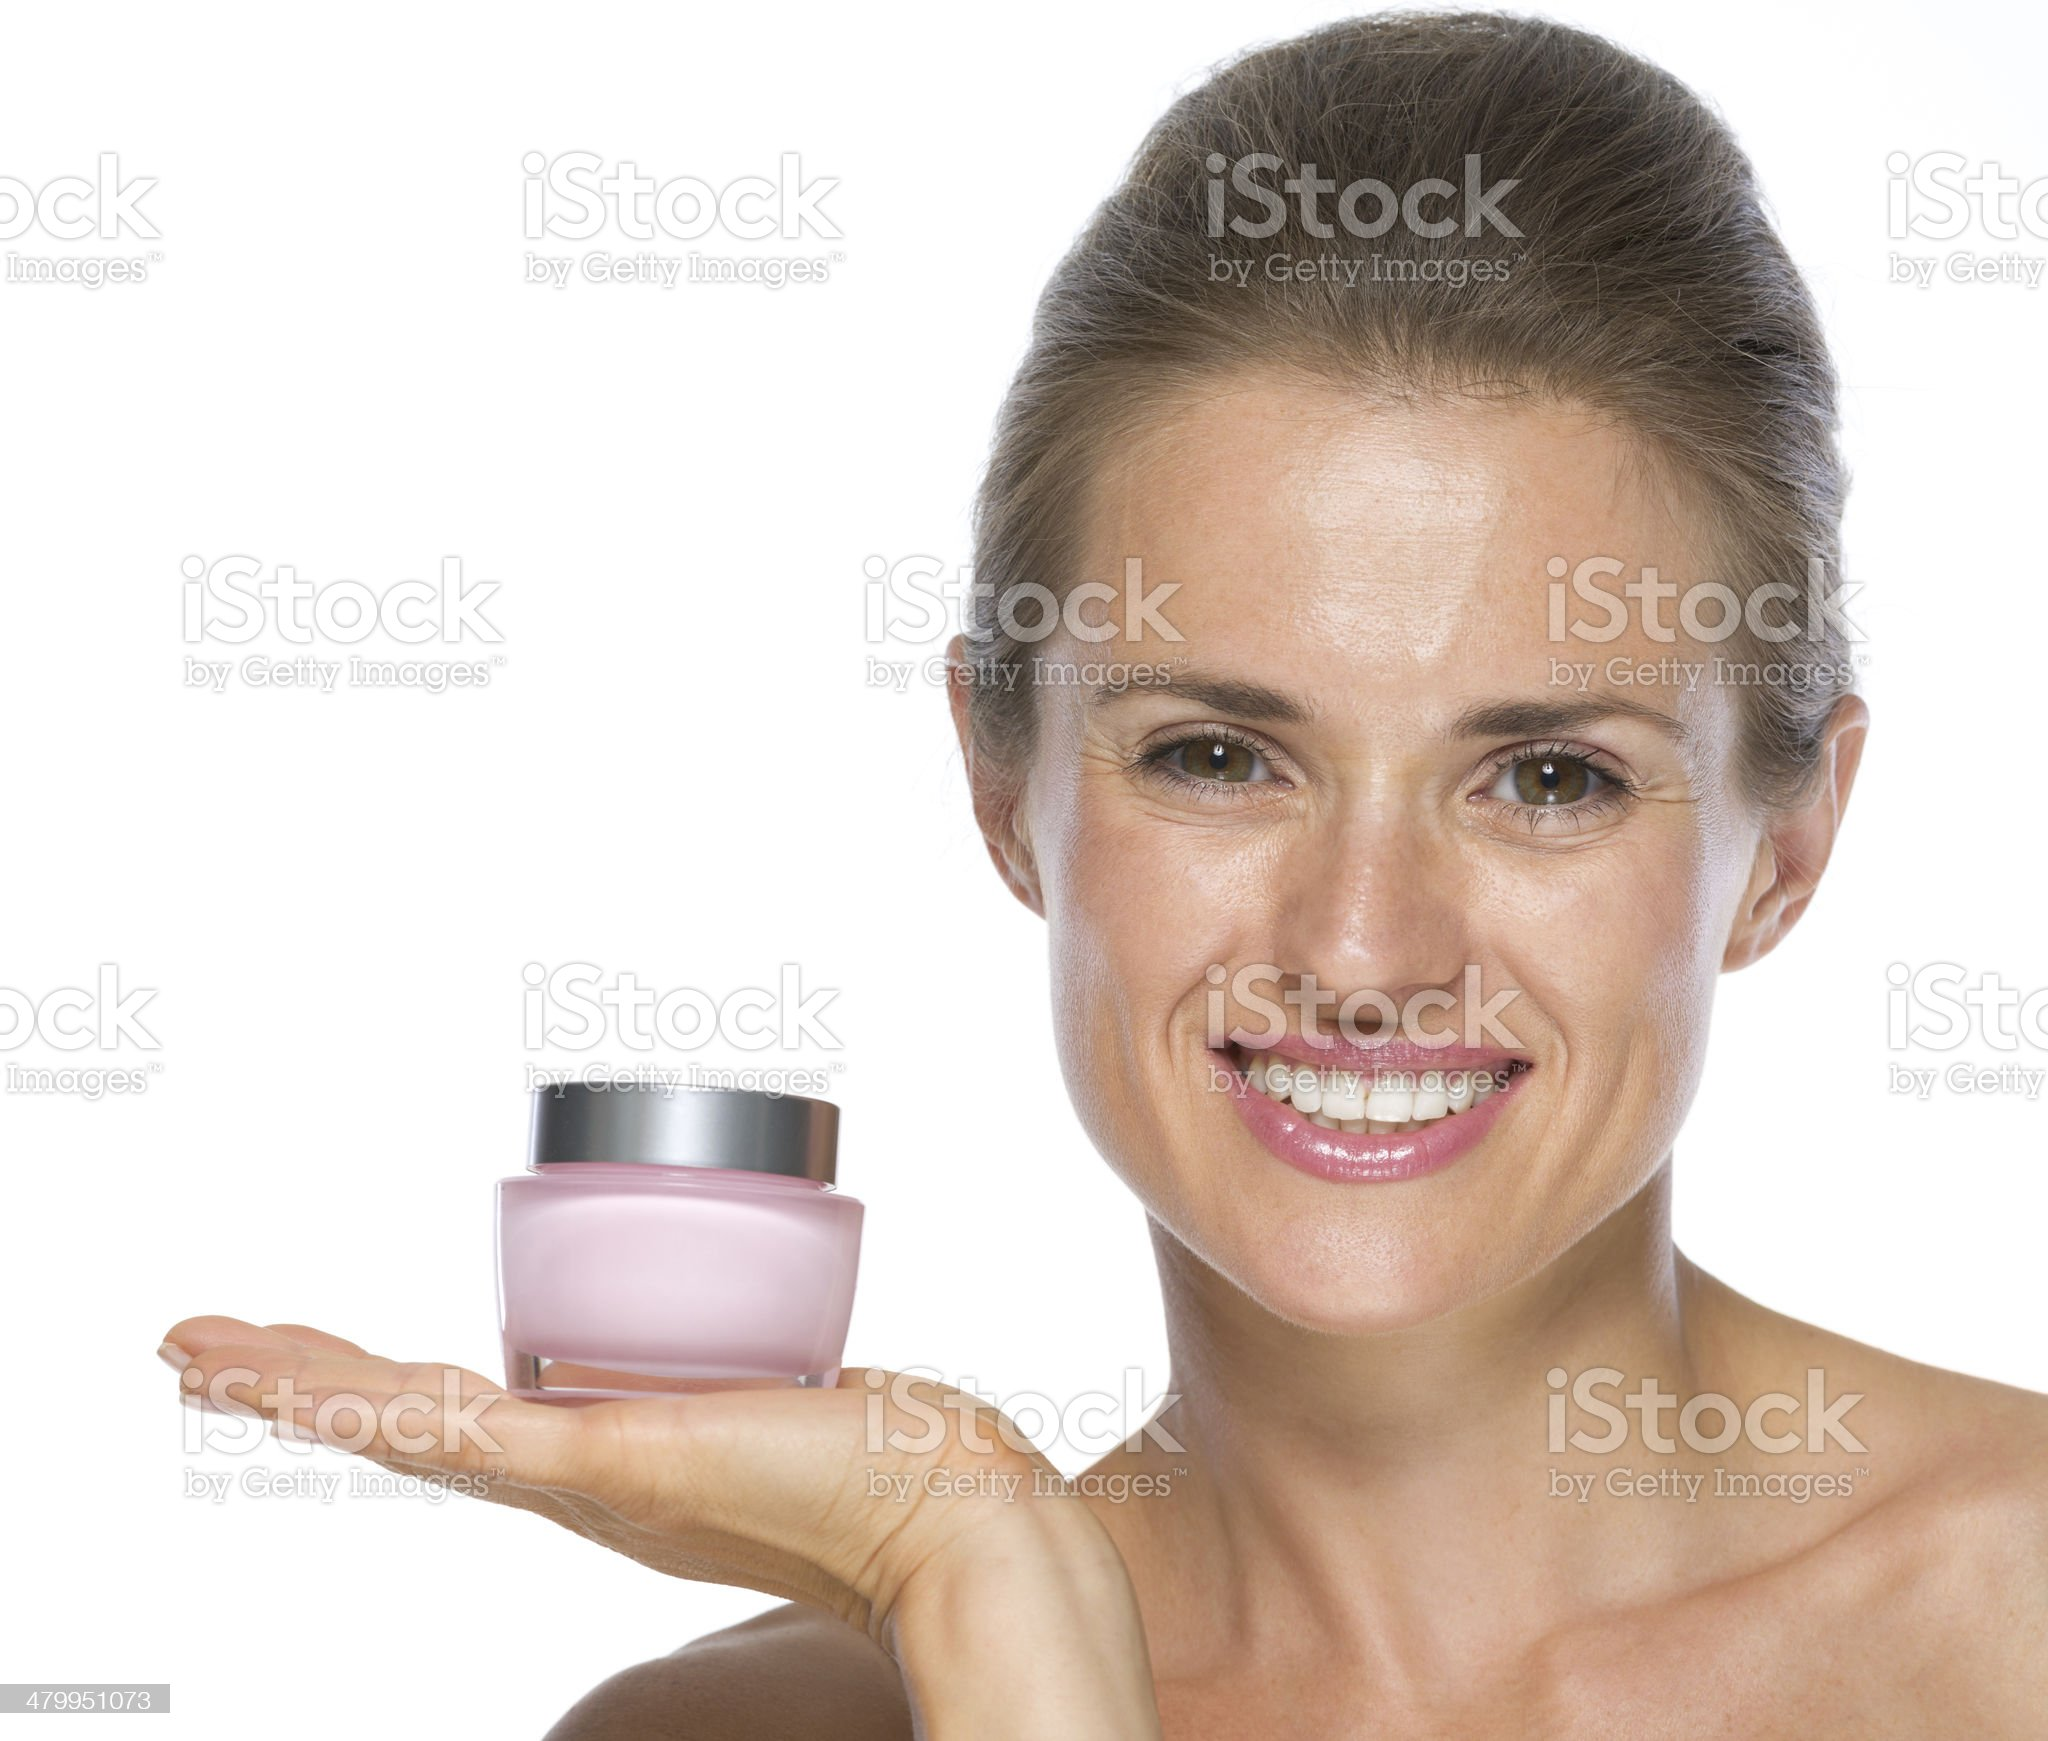 happy young woman showing cream bottle royalty-free stock photo